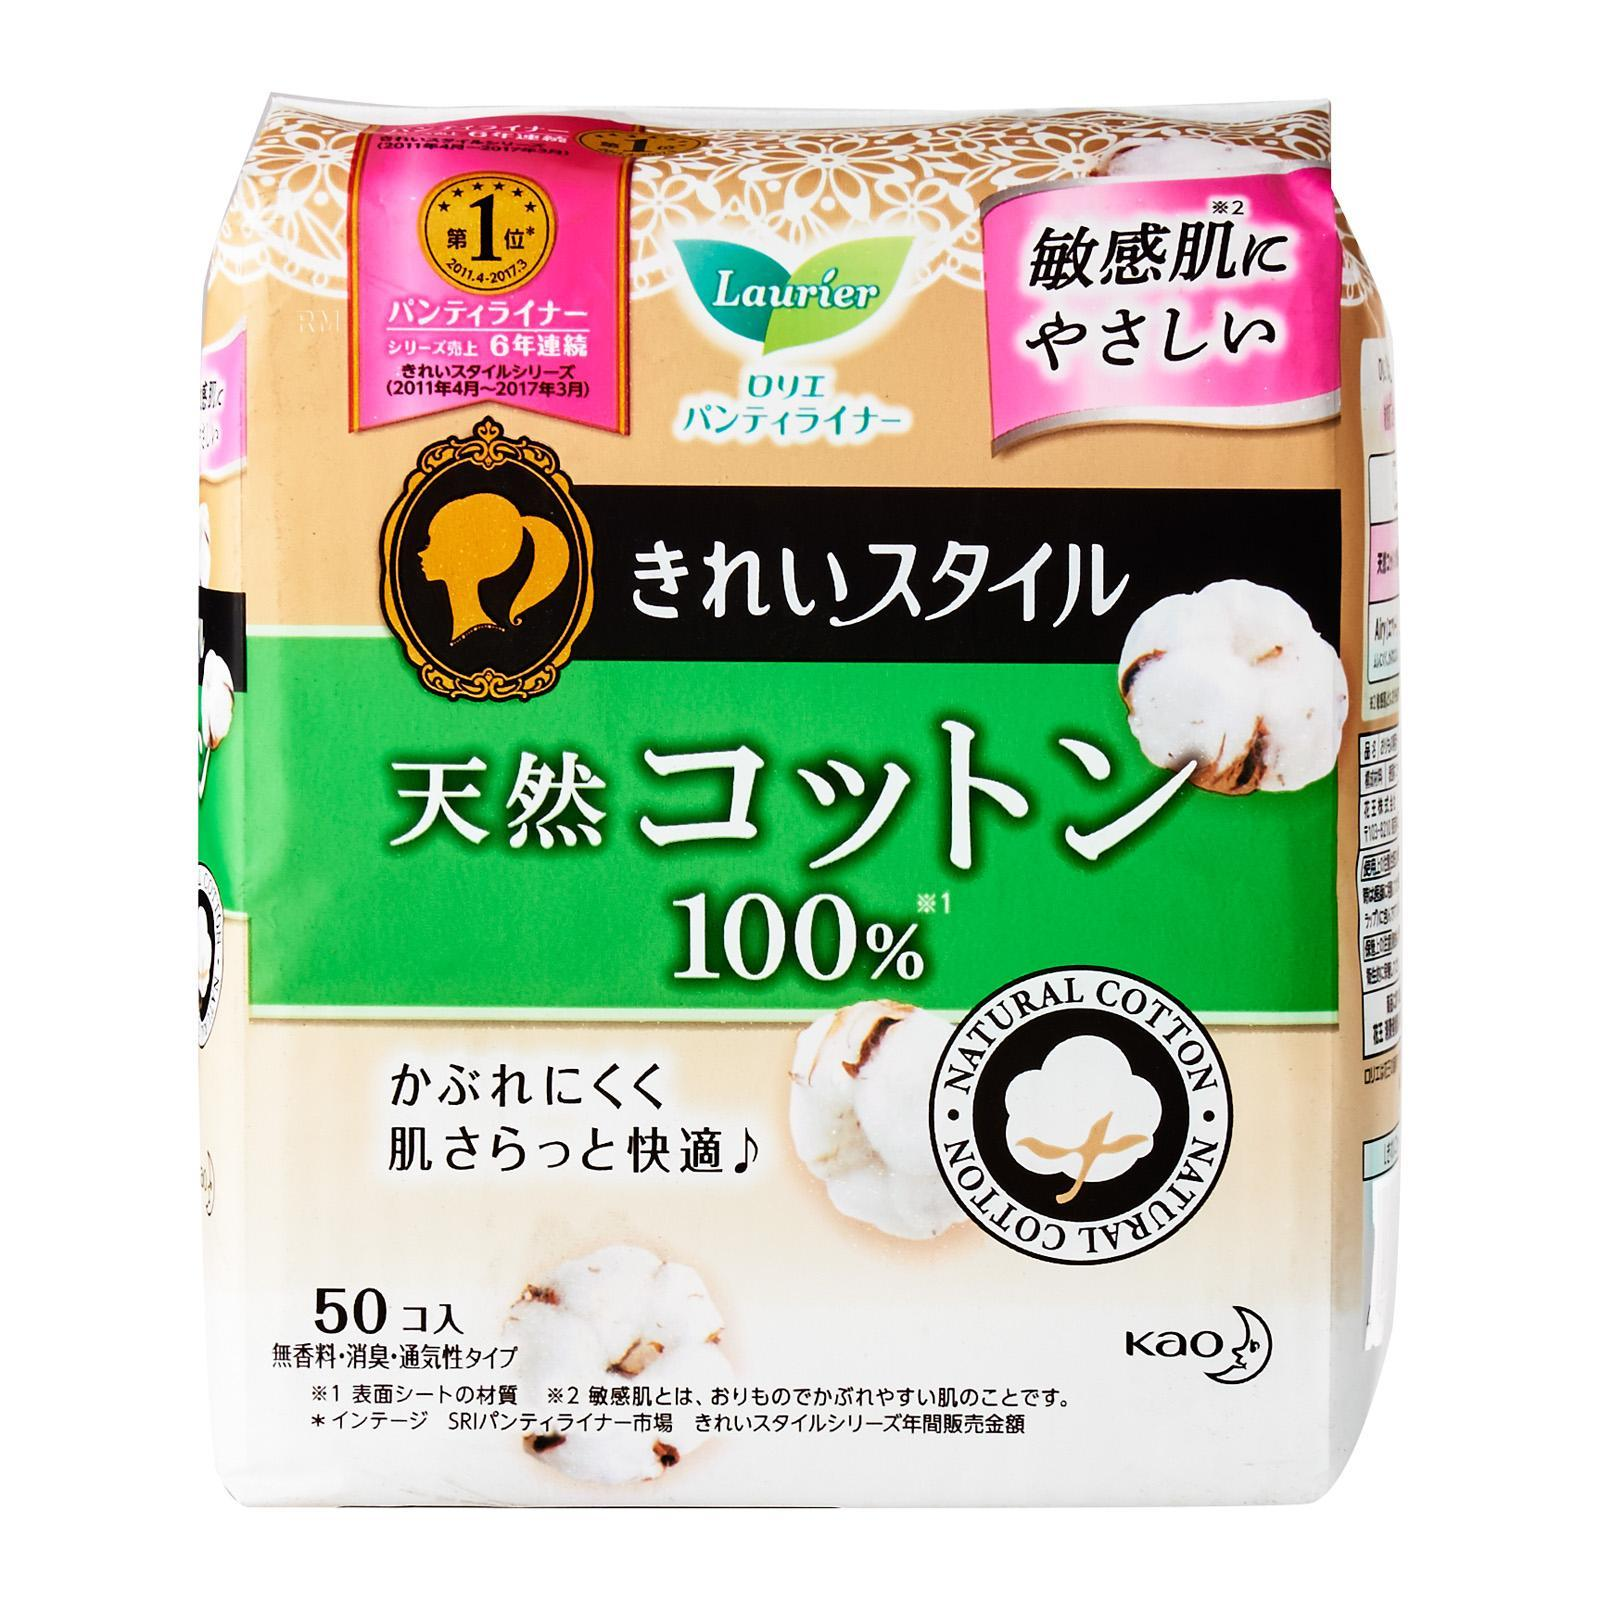 Laurier 100 Percent Natural Cotton Panty Liner - Made in Japan